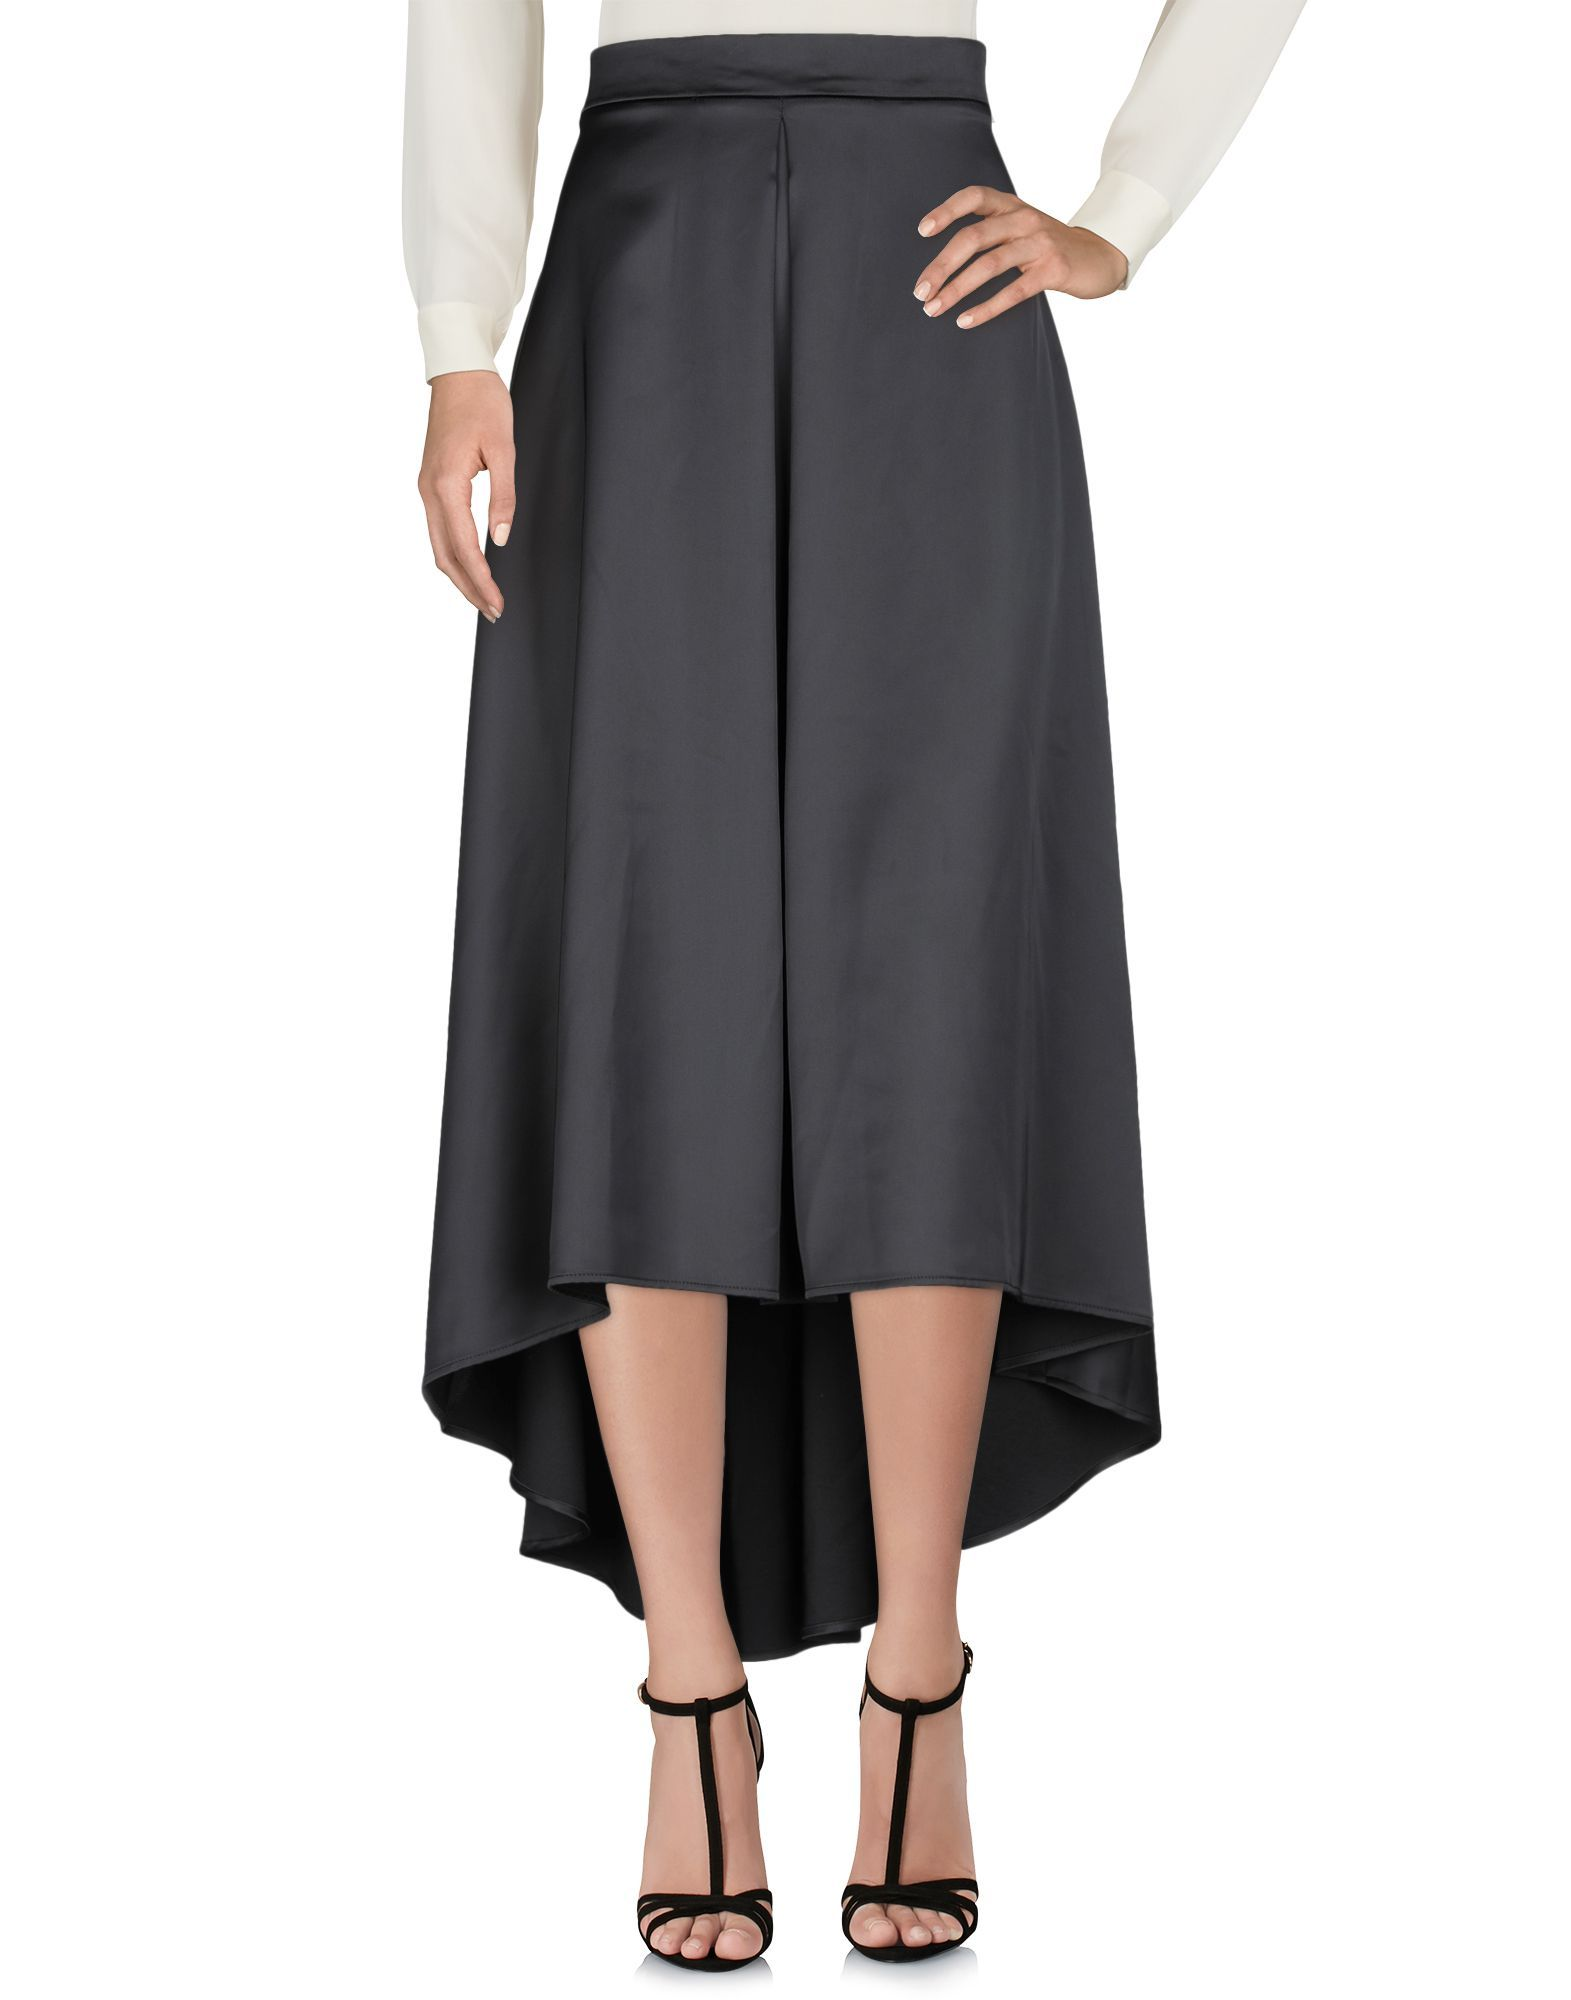 Denny Rose Black High Low Hem Skirt